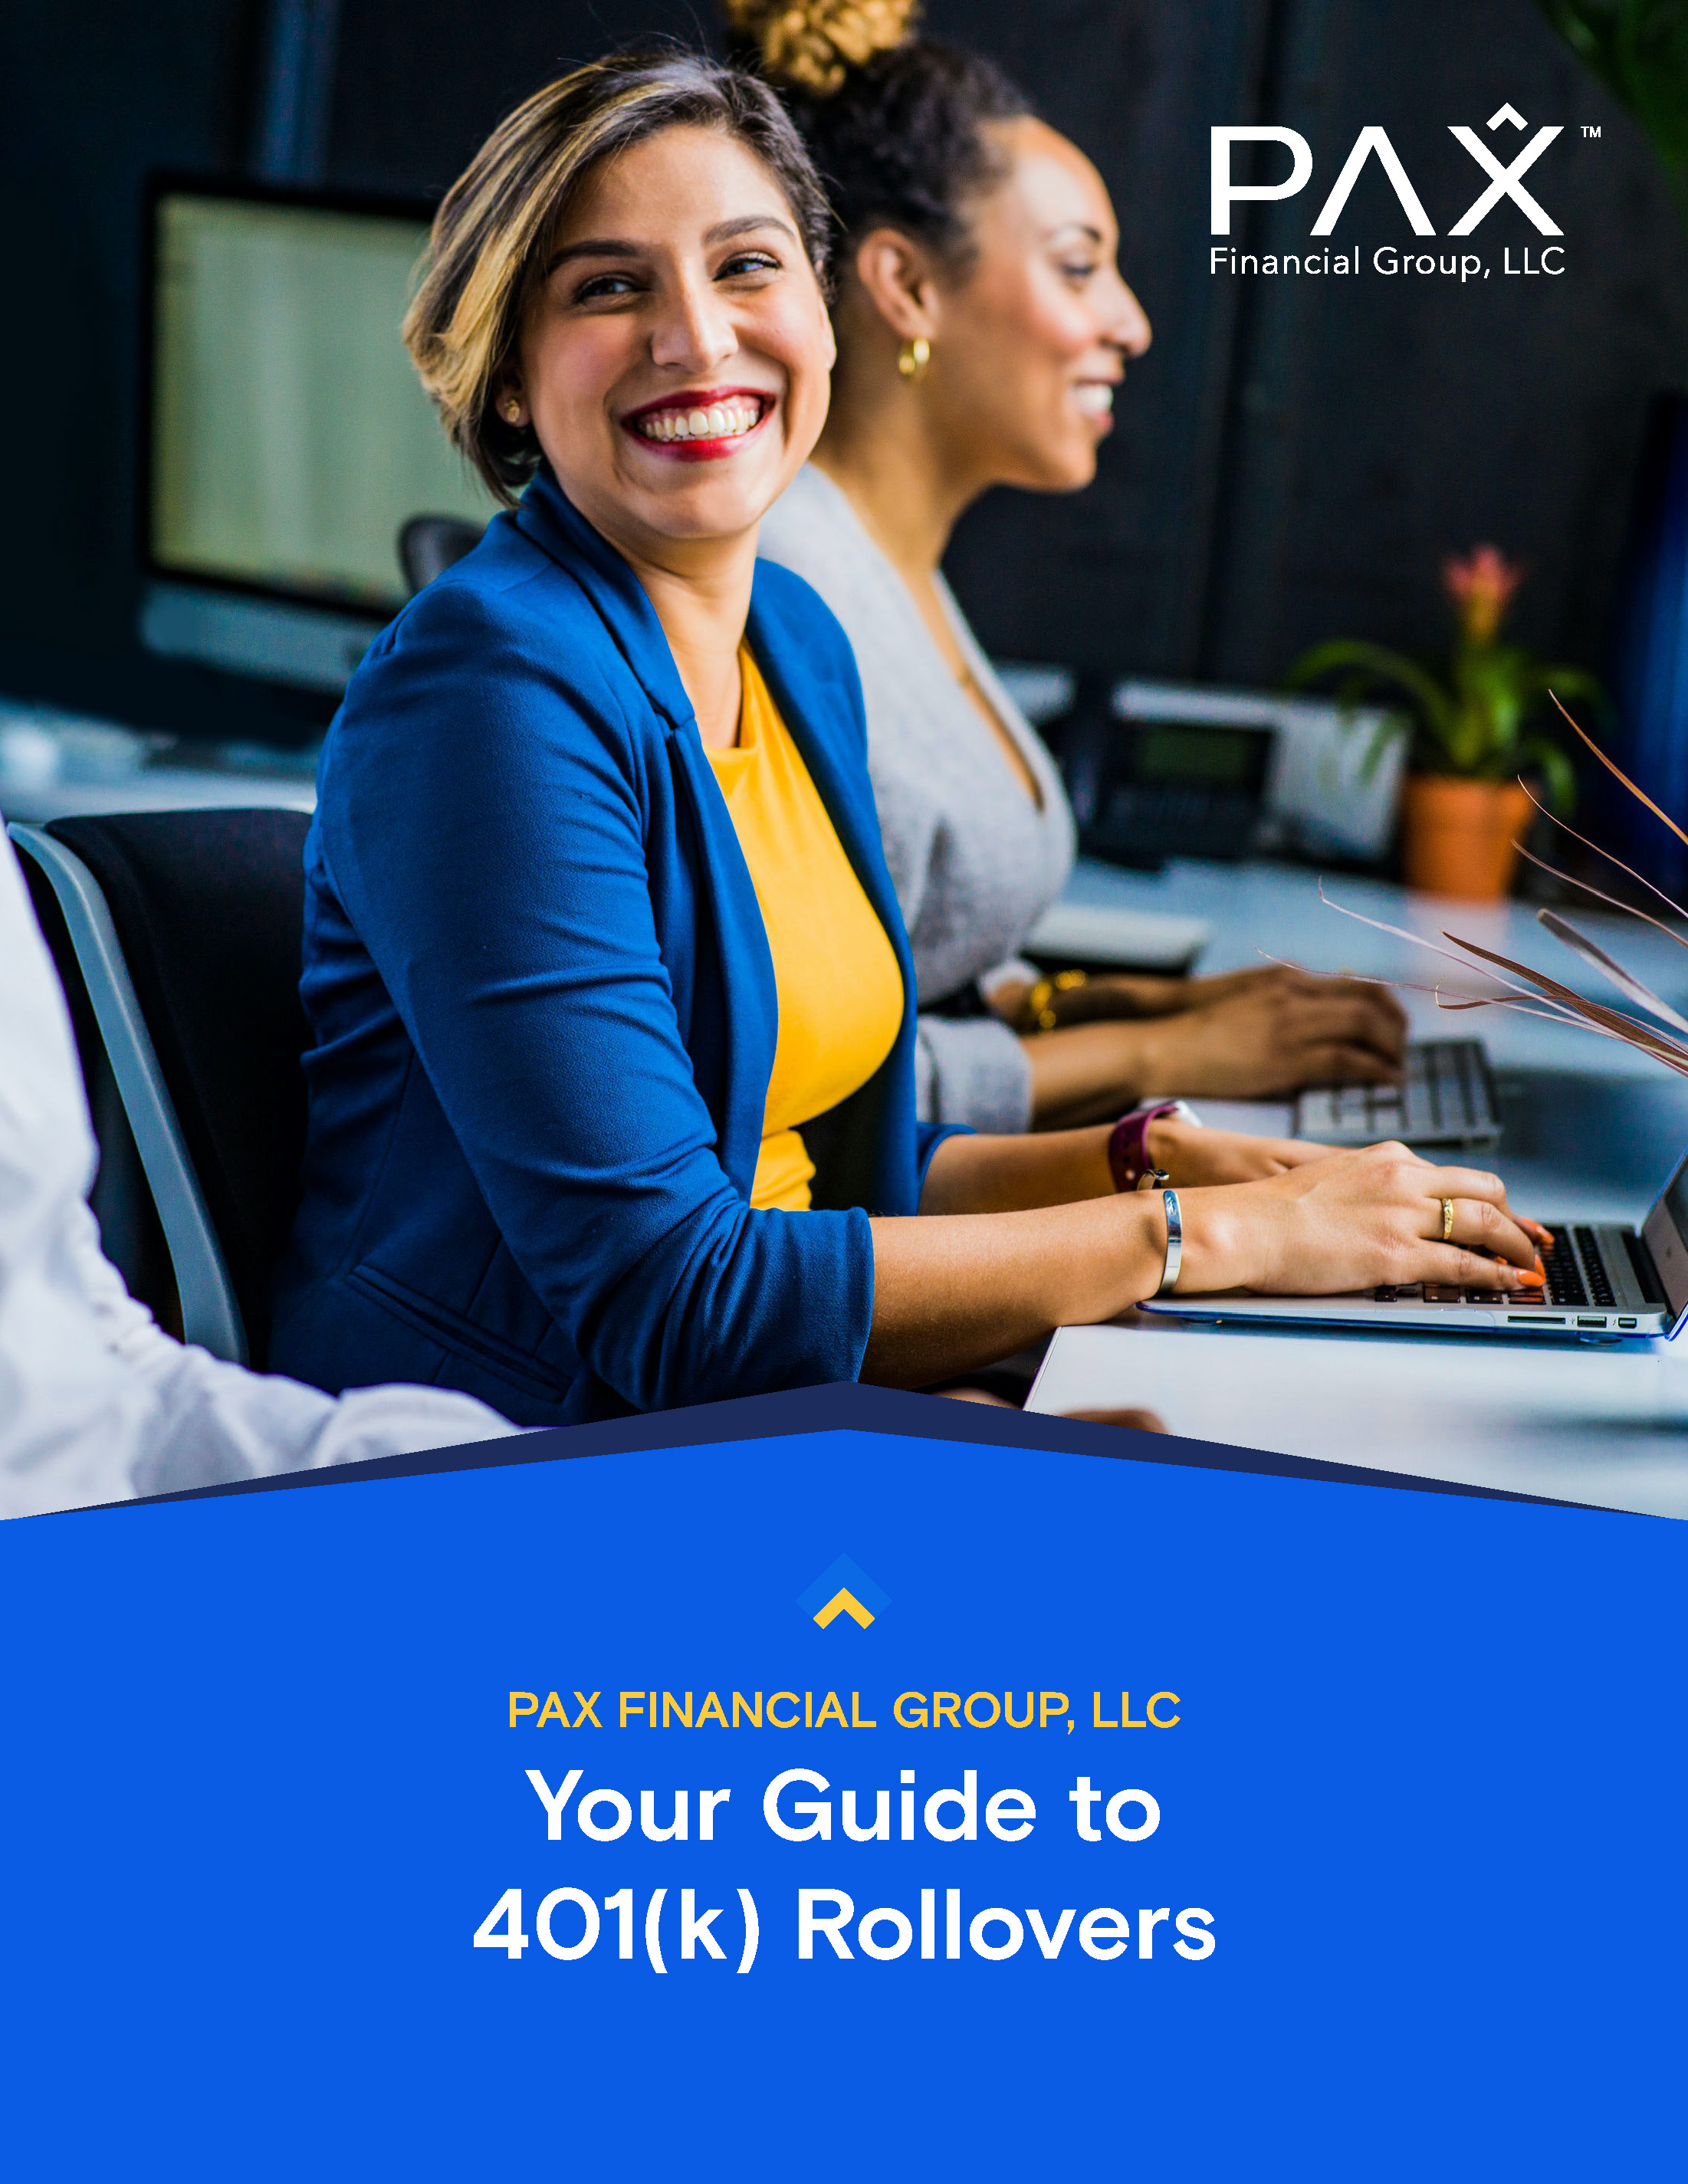 Your Guide to 401(k) Rollovers | PAX Financial Group, LLC